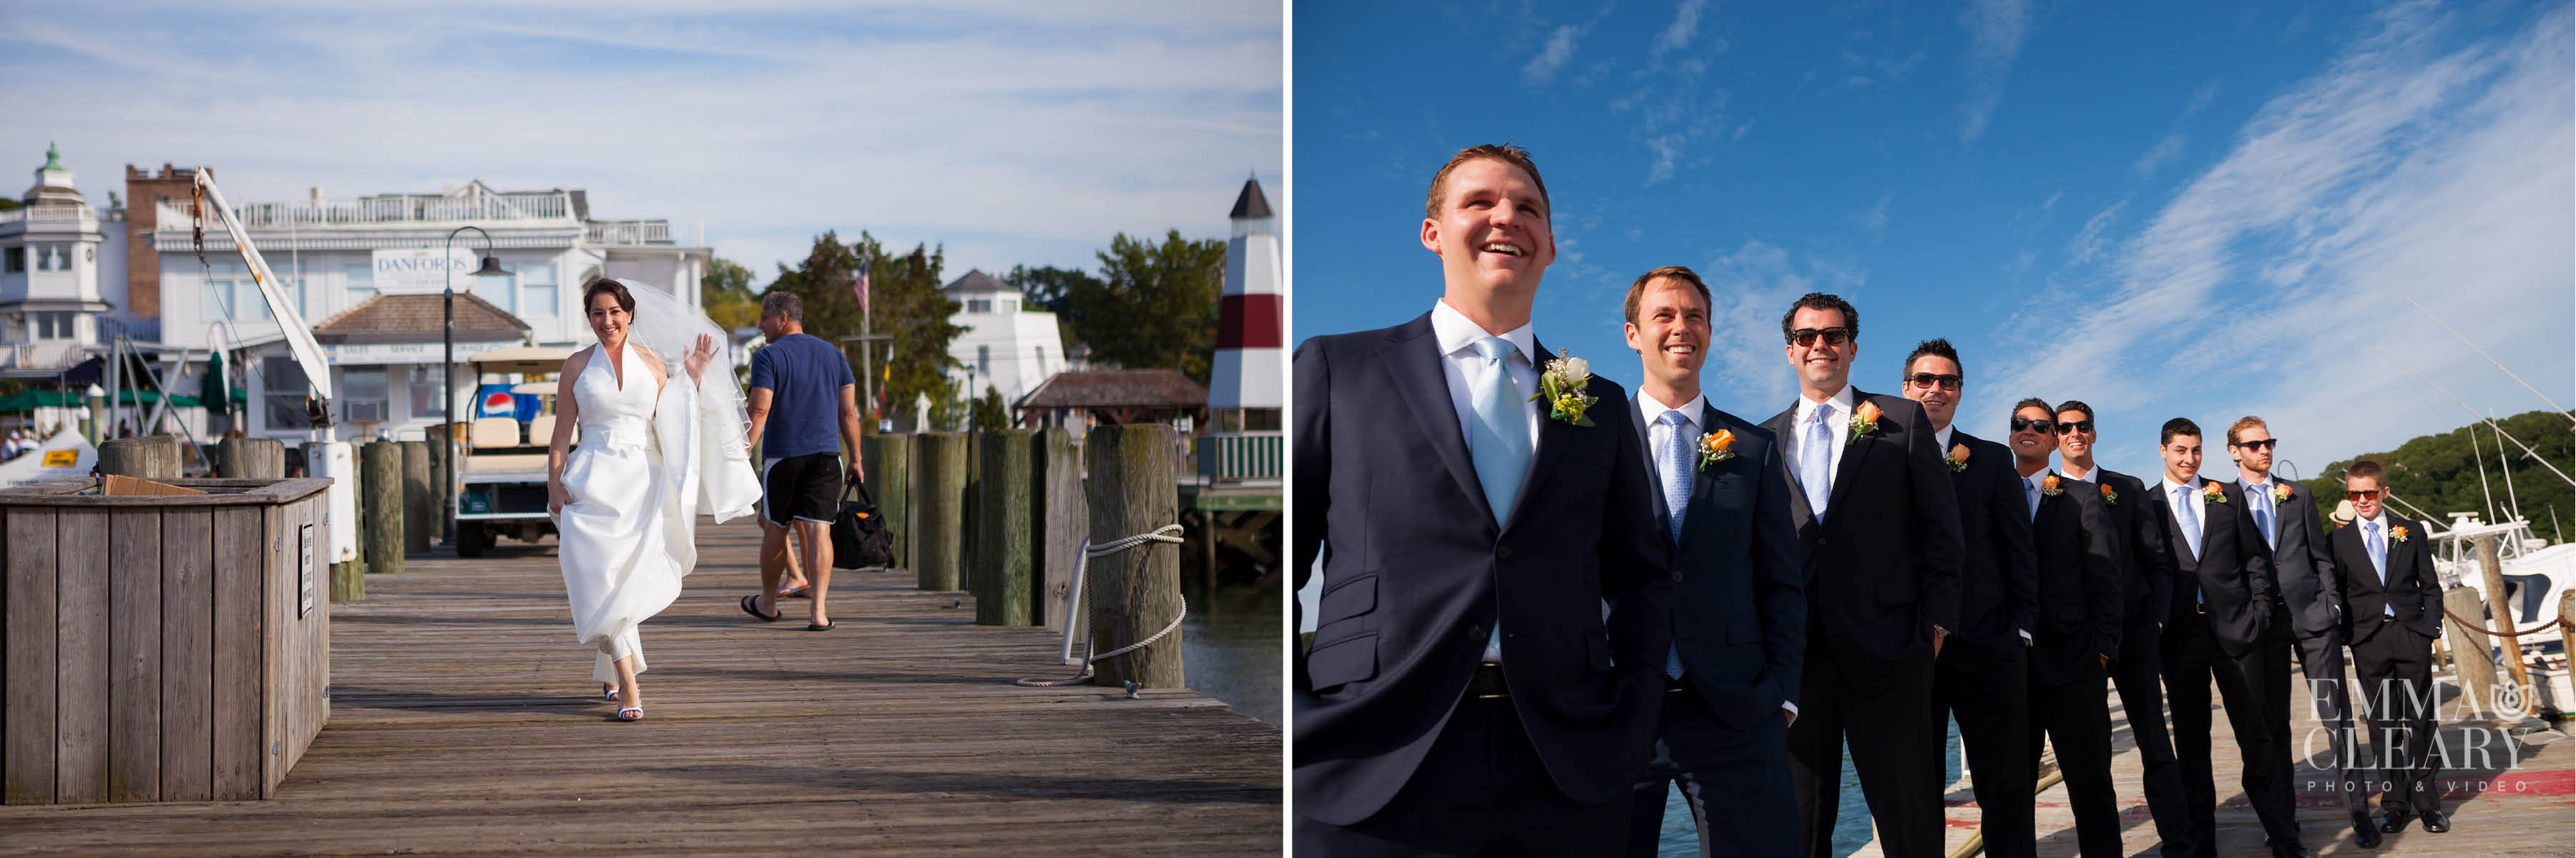 Emma Cleary Photography, Danfords Marina wedding9